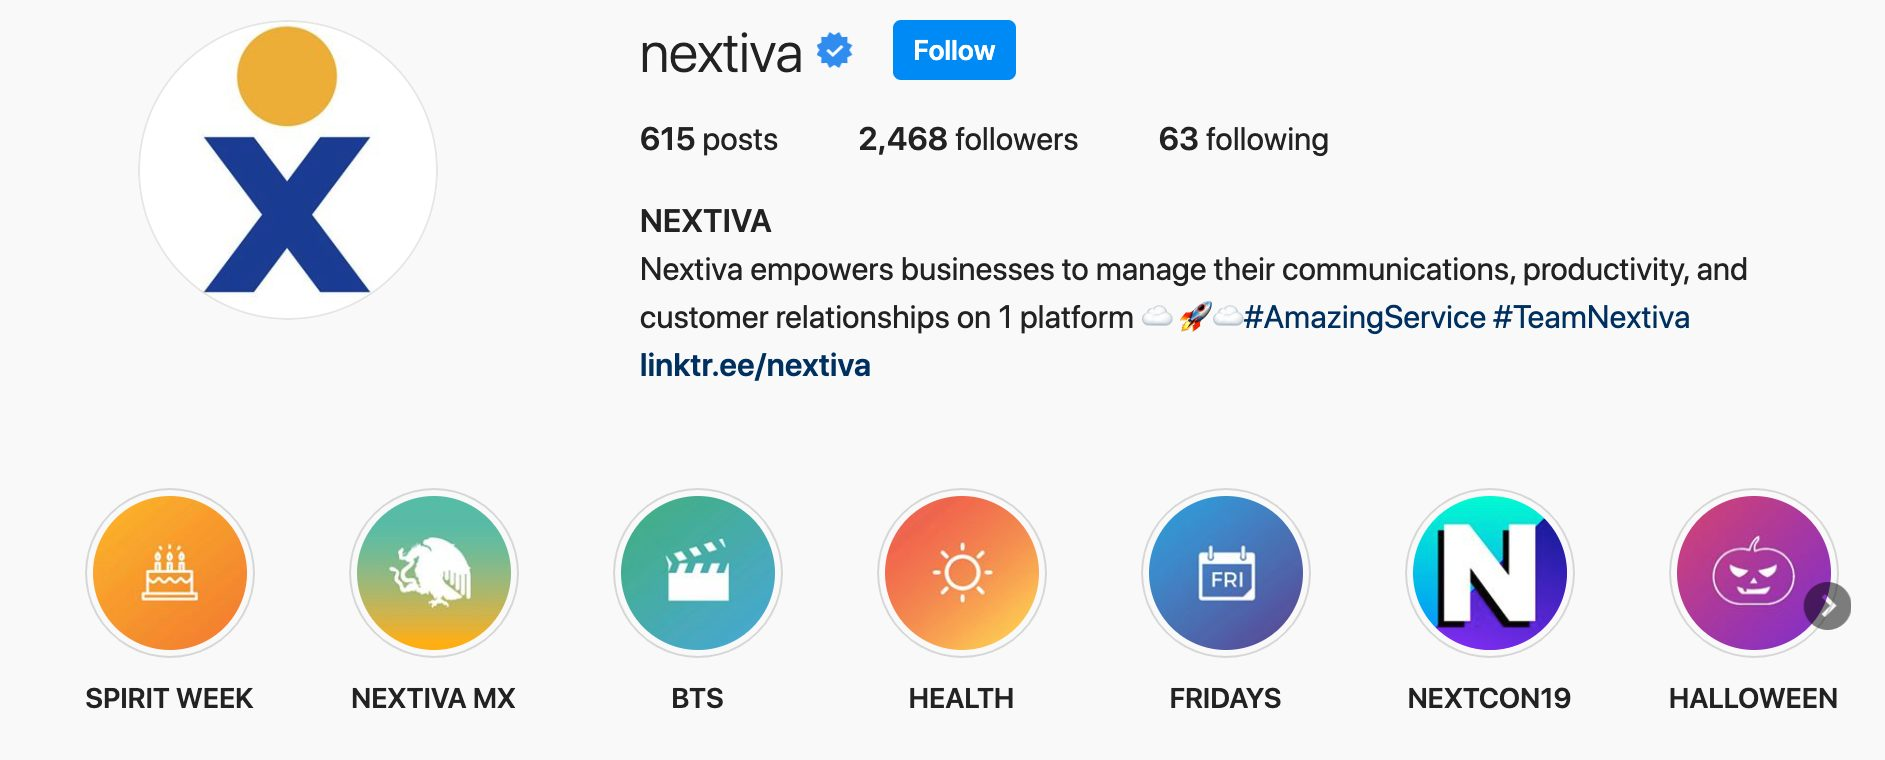 9 Expert Tips for Crafting the Perfect Instagram Bio